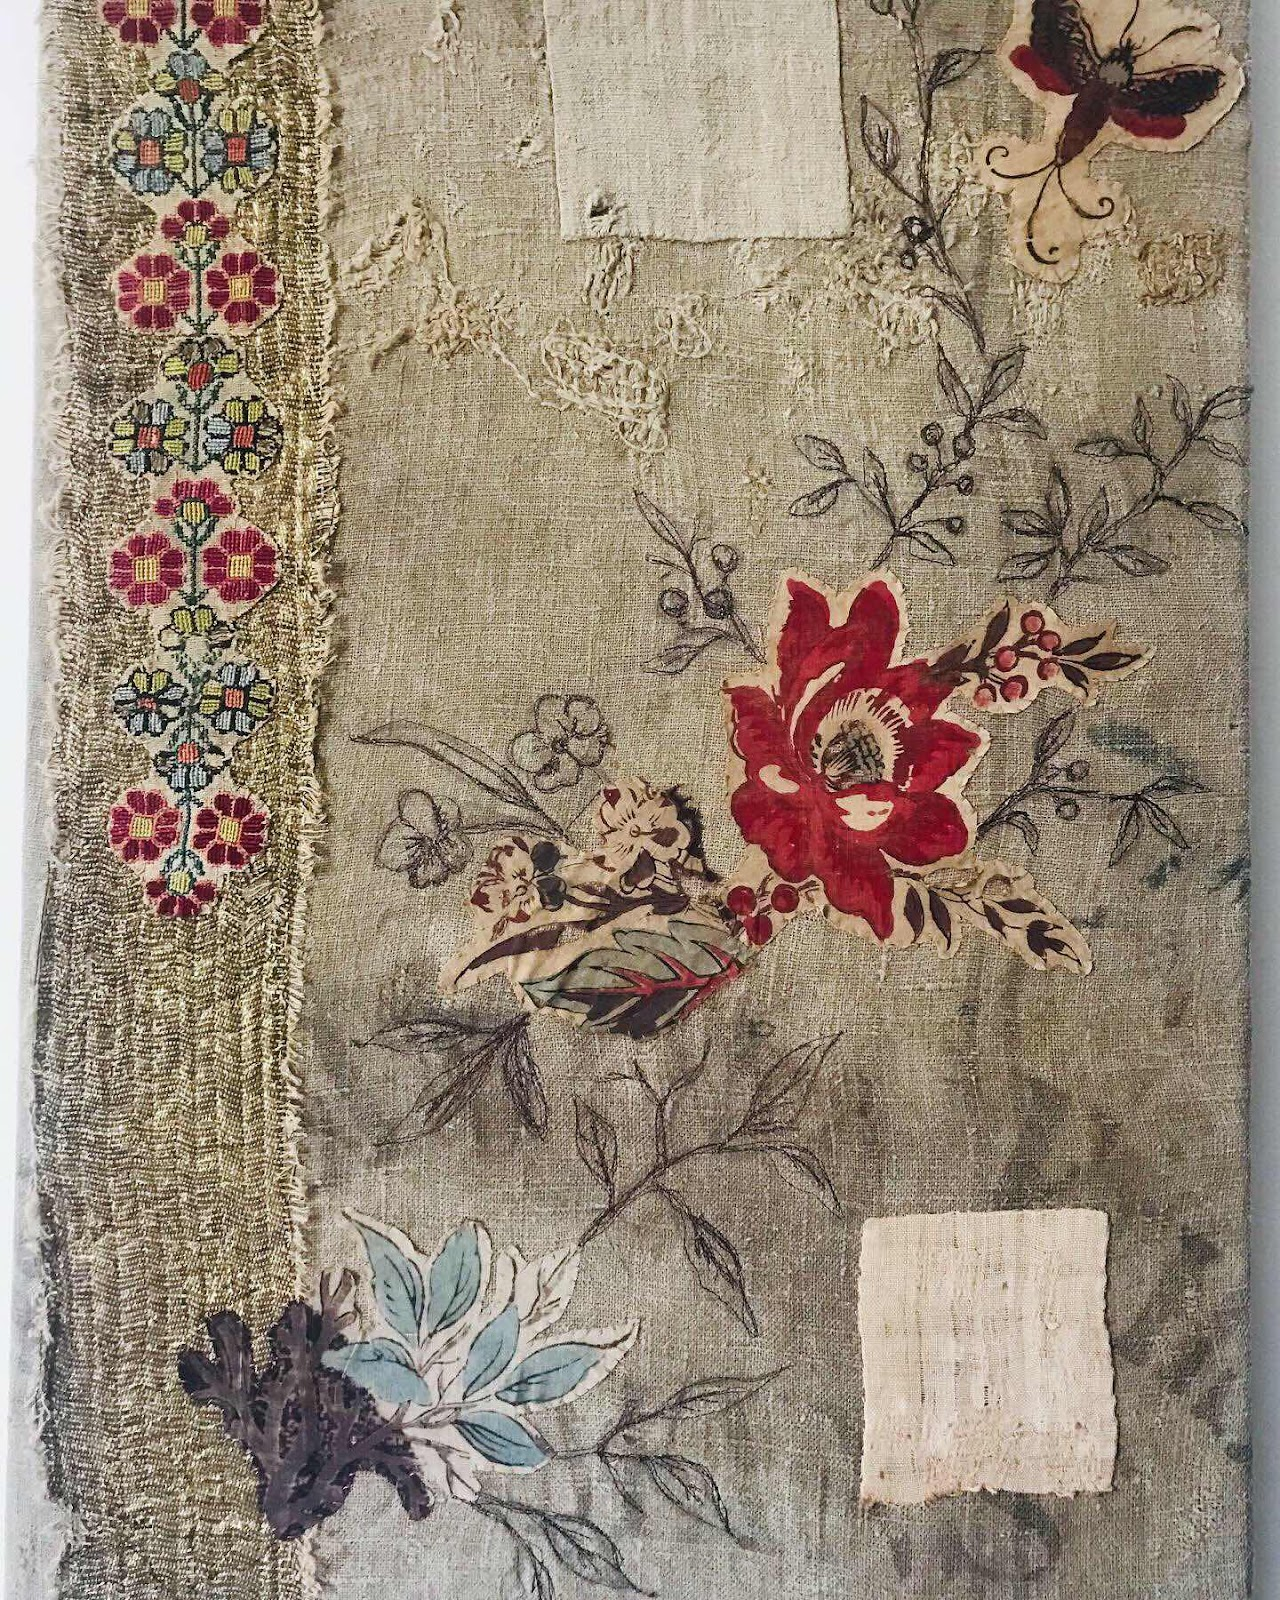 Textile picture featuring a flower